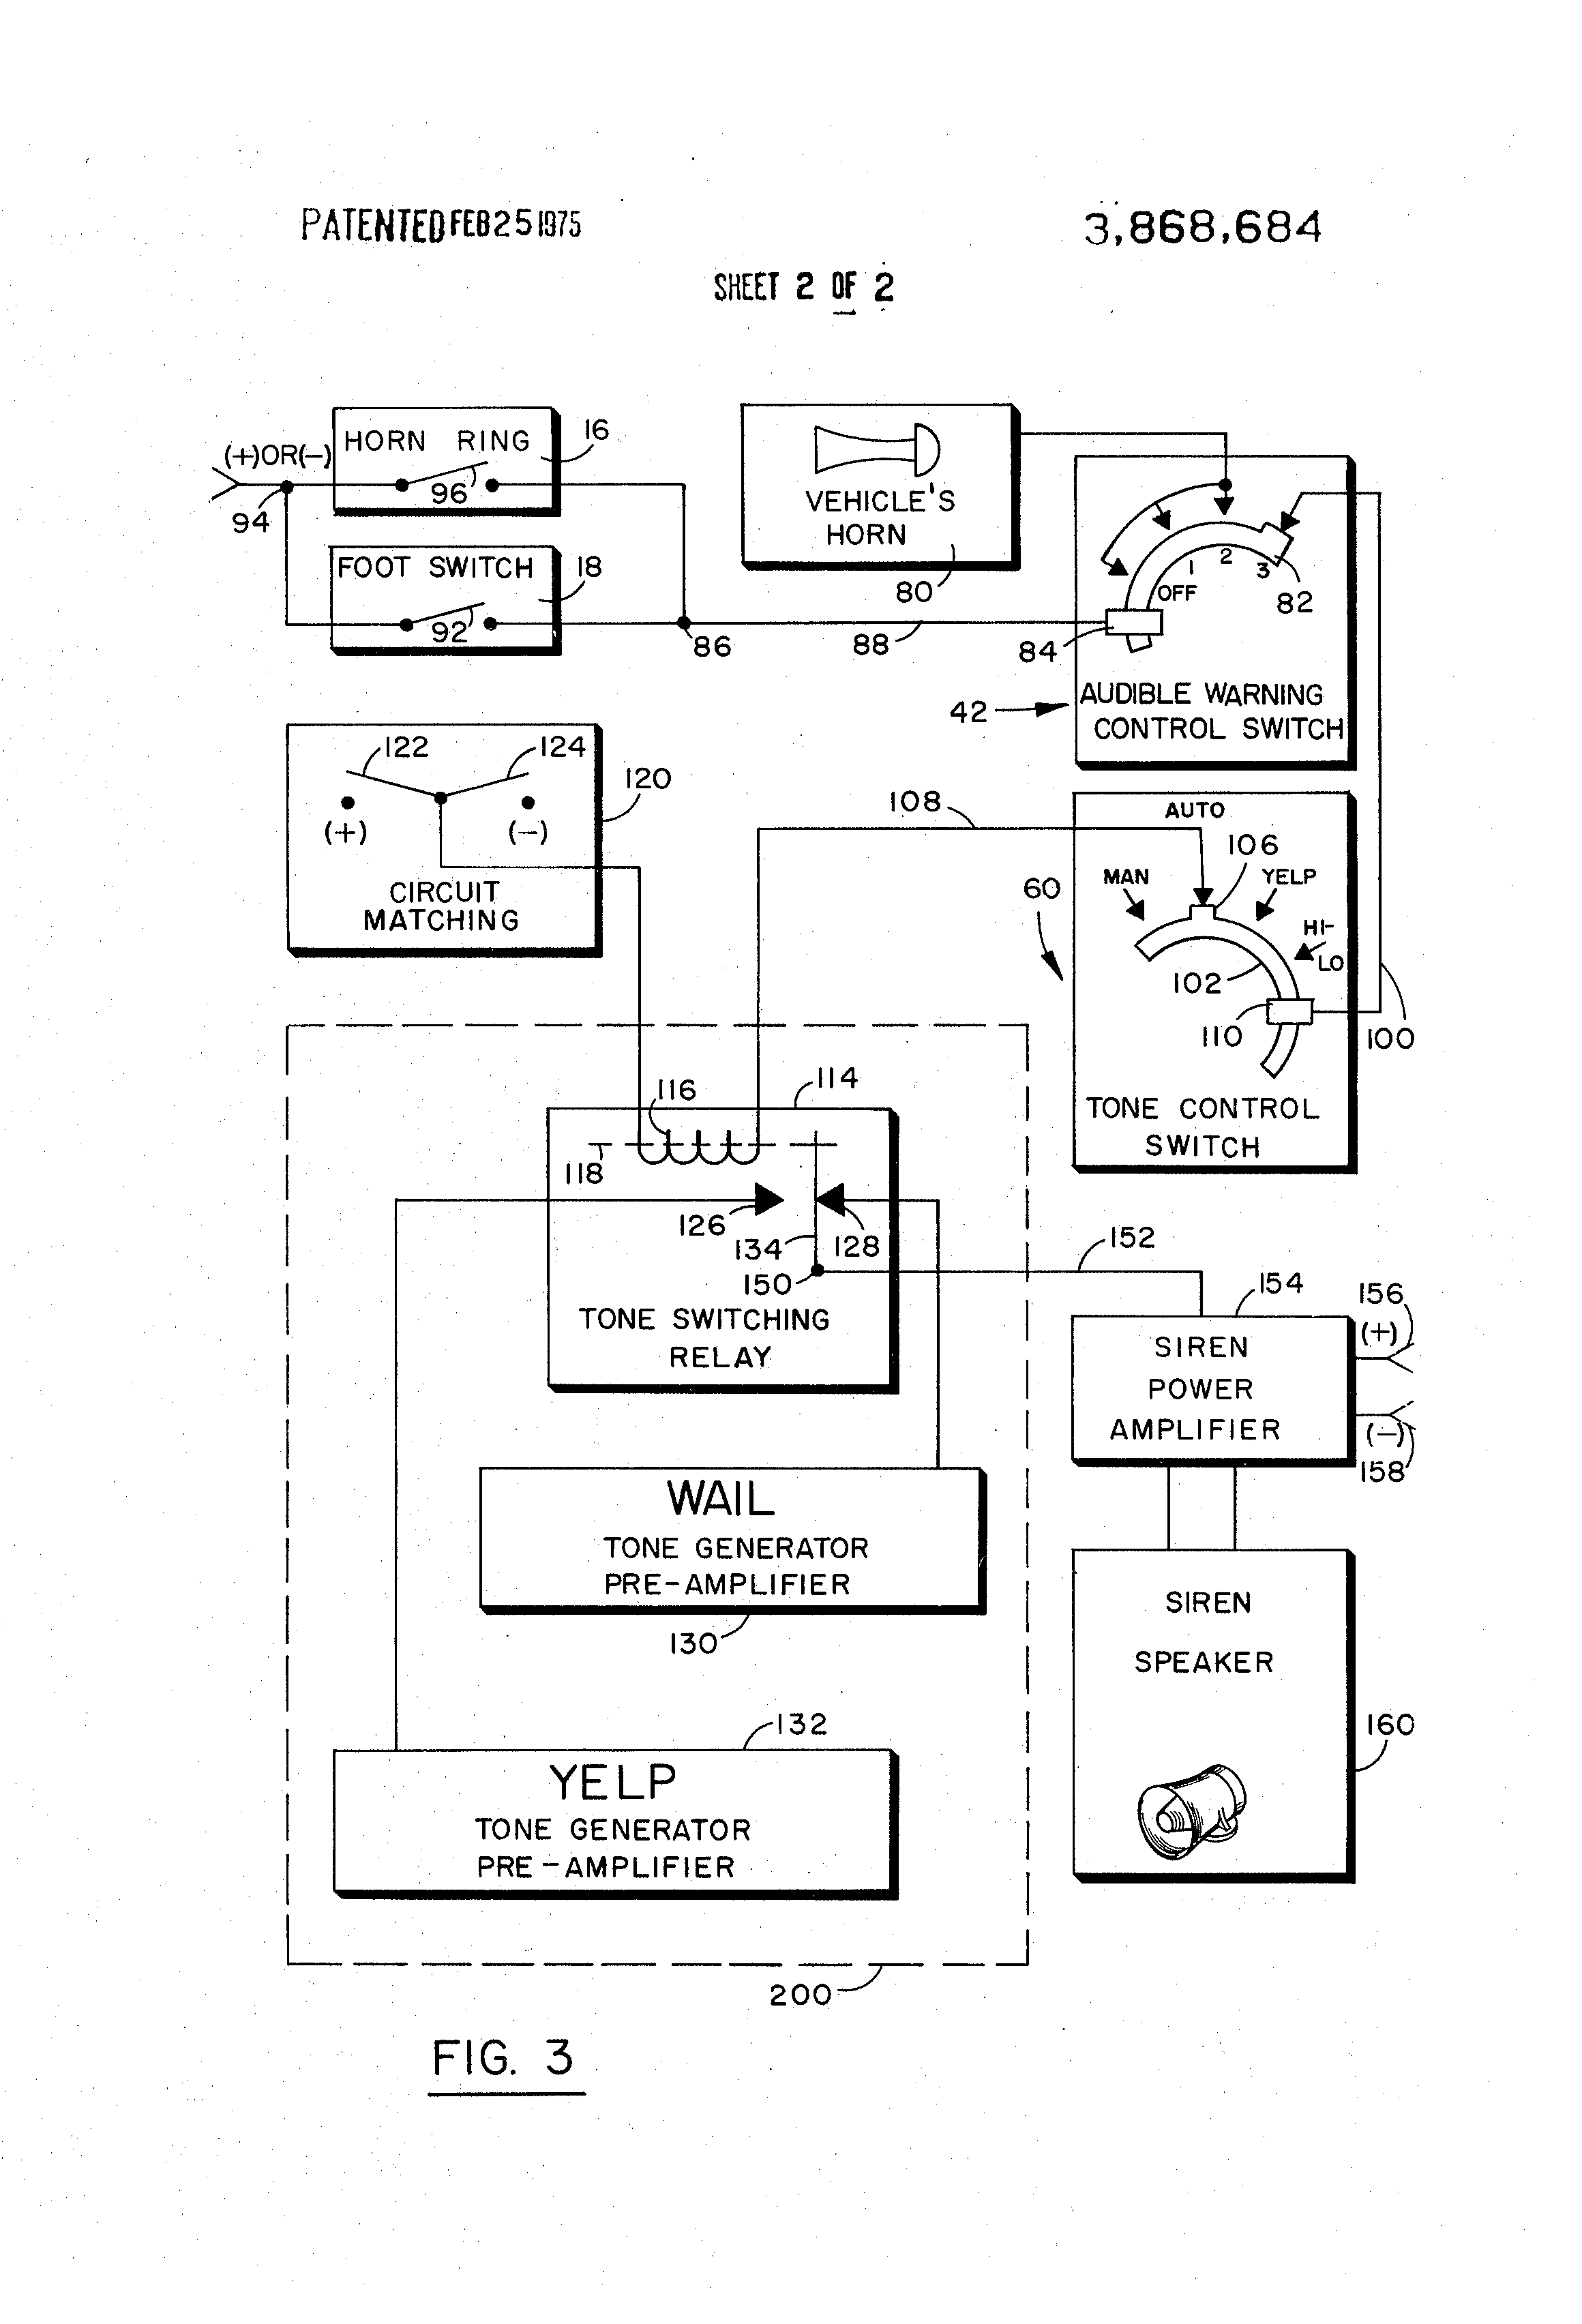 US3868684-2 Unitrol Touchmaster Delta Wiring Diagram on delta flight routes, delta lga, delta transformer diagram, delta wiring test, delta heater wiring, 3 phase delta diagram, delta system, delta power, delta switches diagram, delta la guardia, delta wiring connection, delta comfort plus, delta y wiring, delta connection diagram, delta and wye wiring, delta global services, delta ad,